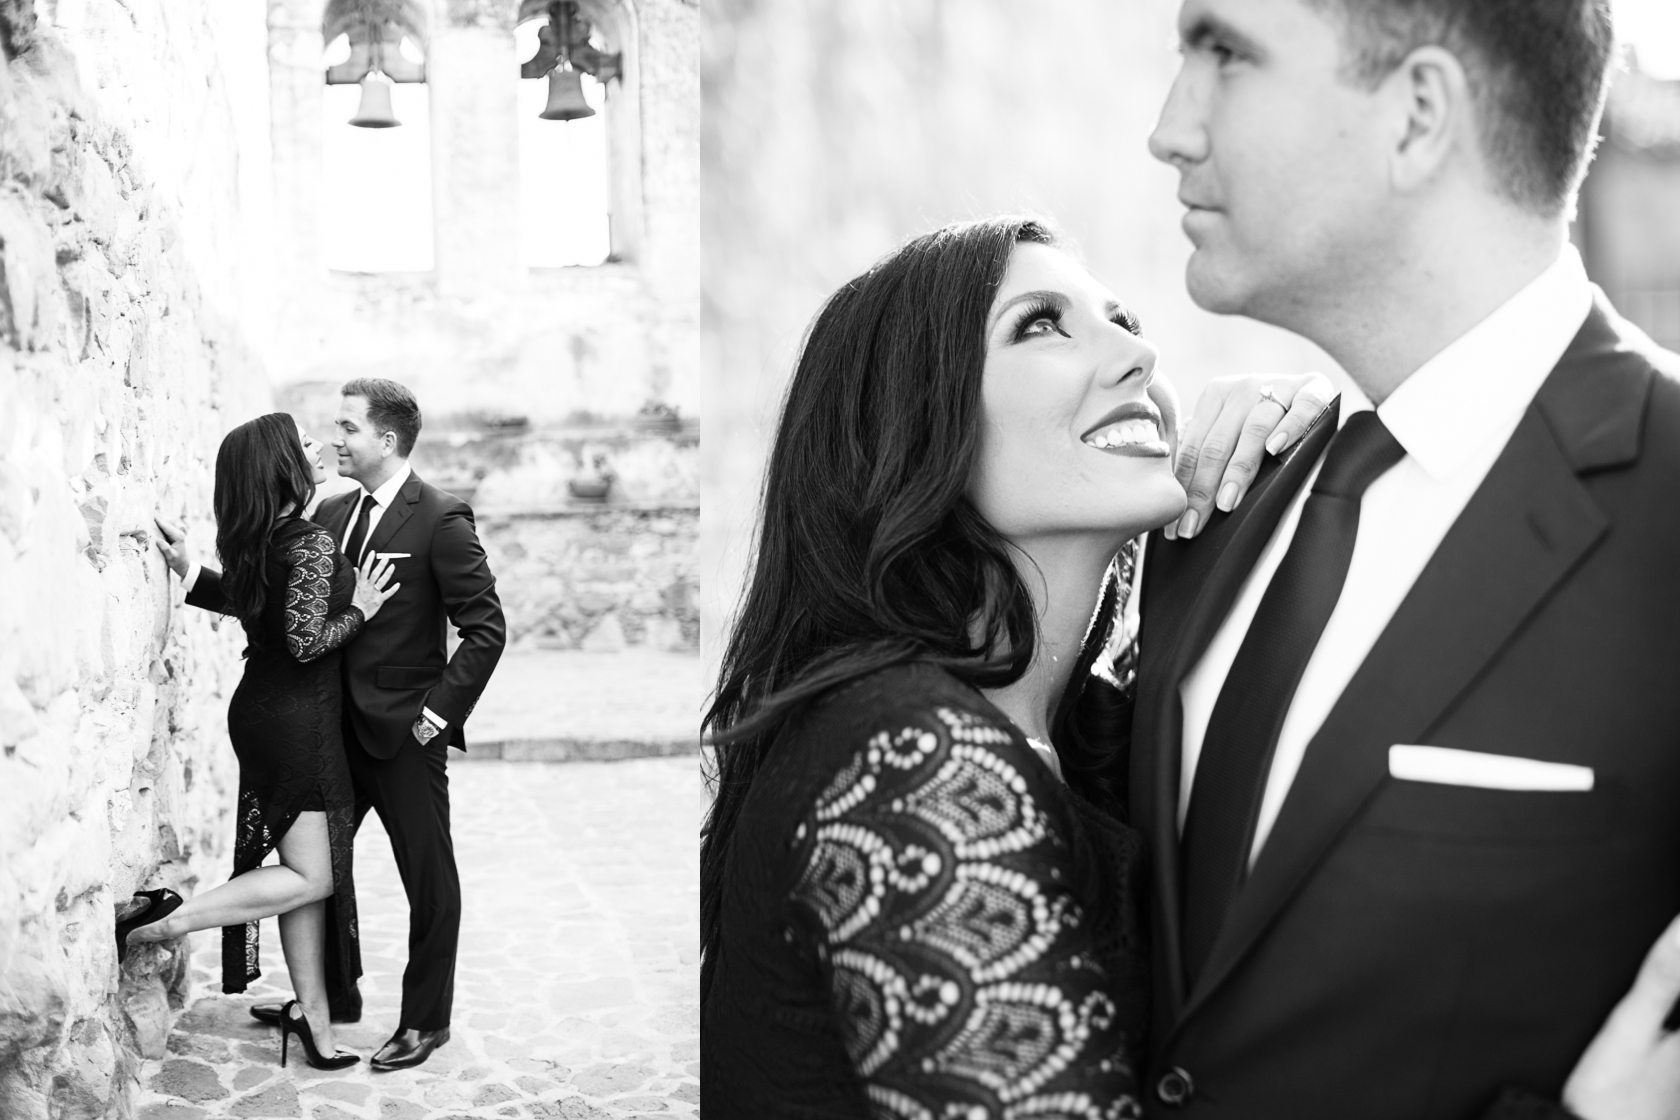 Mission_San_Juan_Capistrano_Engagement_Session_05.jpg